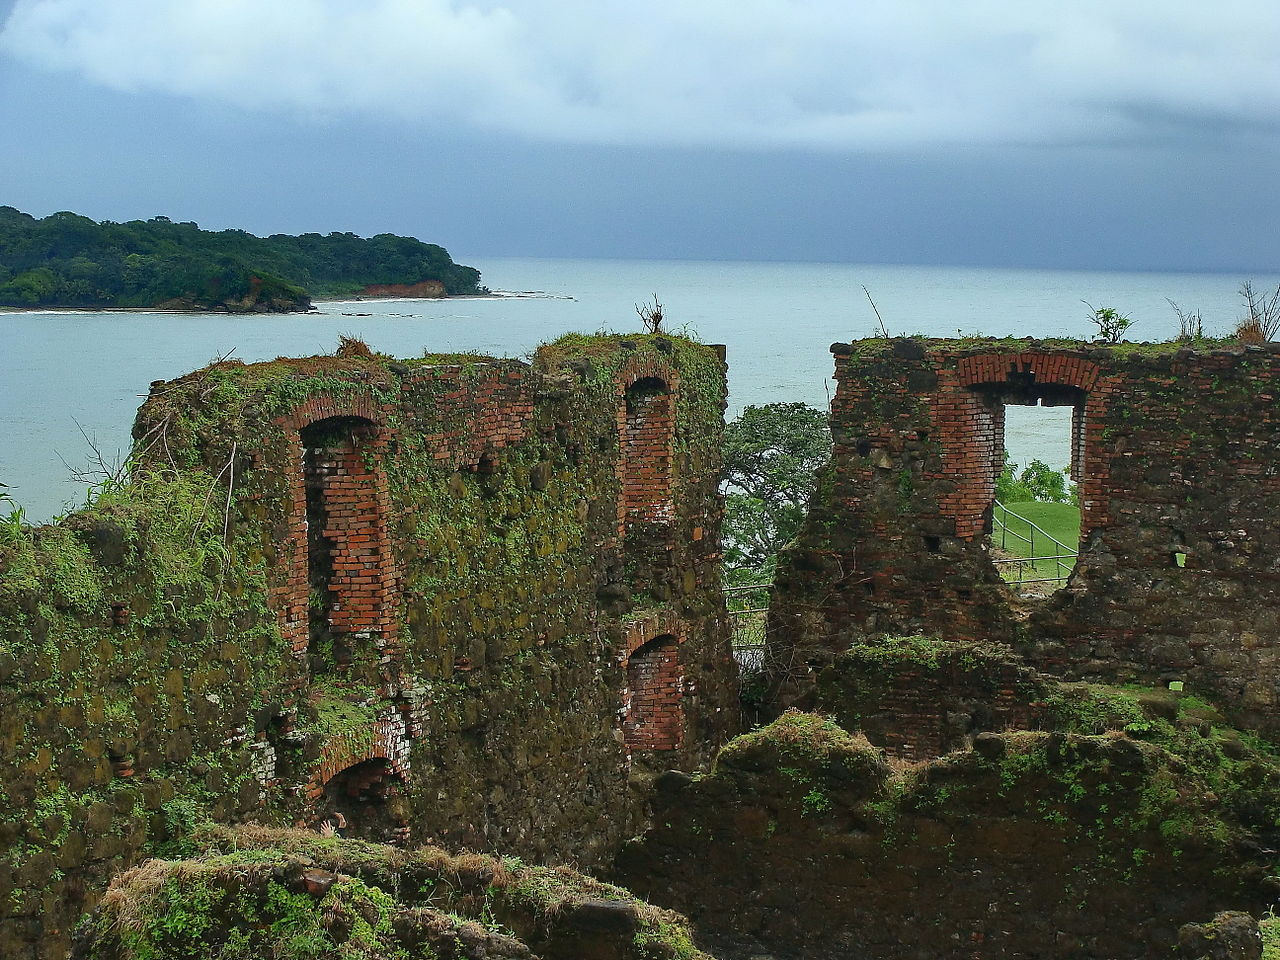 Photo of the ruins of Fort San Lorenzo. The fort in Portobelo-San Lorenzo on Panama's Caribbean coast is a World Heritage site facing major conservation and maintenance issues relating to its masonry work. Photo by Ivo Kruusamägi (CC BY-SA 3.0) via Wikimedia Commons